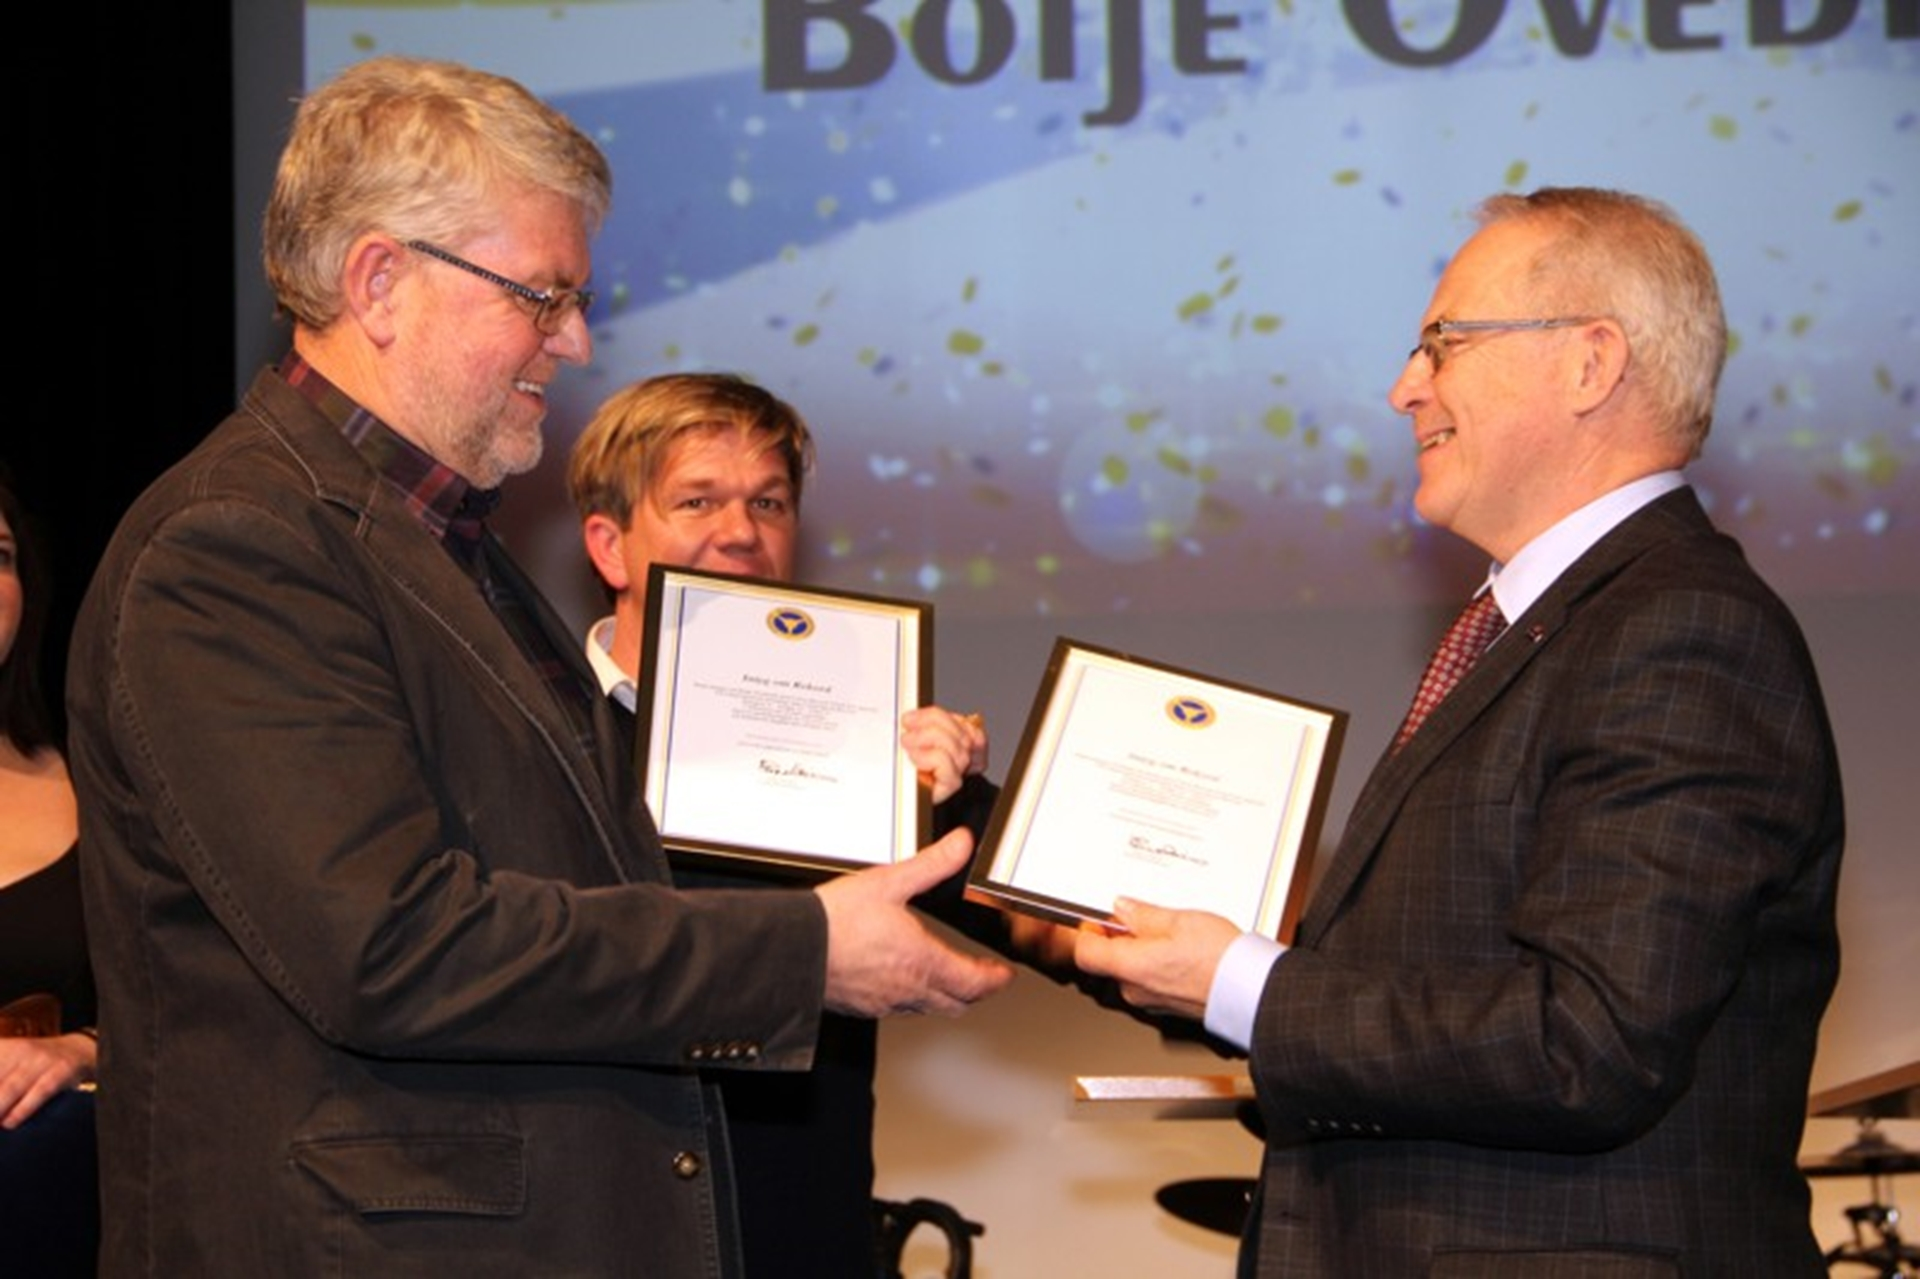 Boije Ovebrink (left) at the ceremony in Stockholm